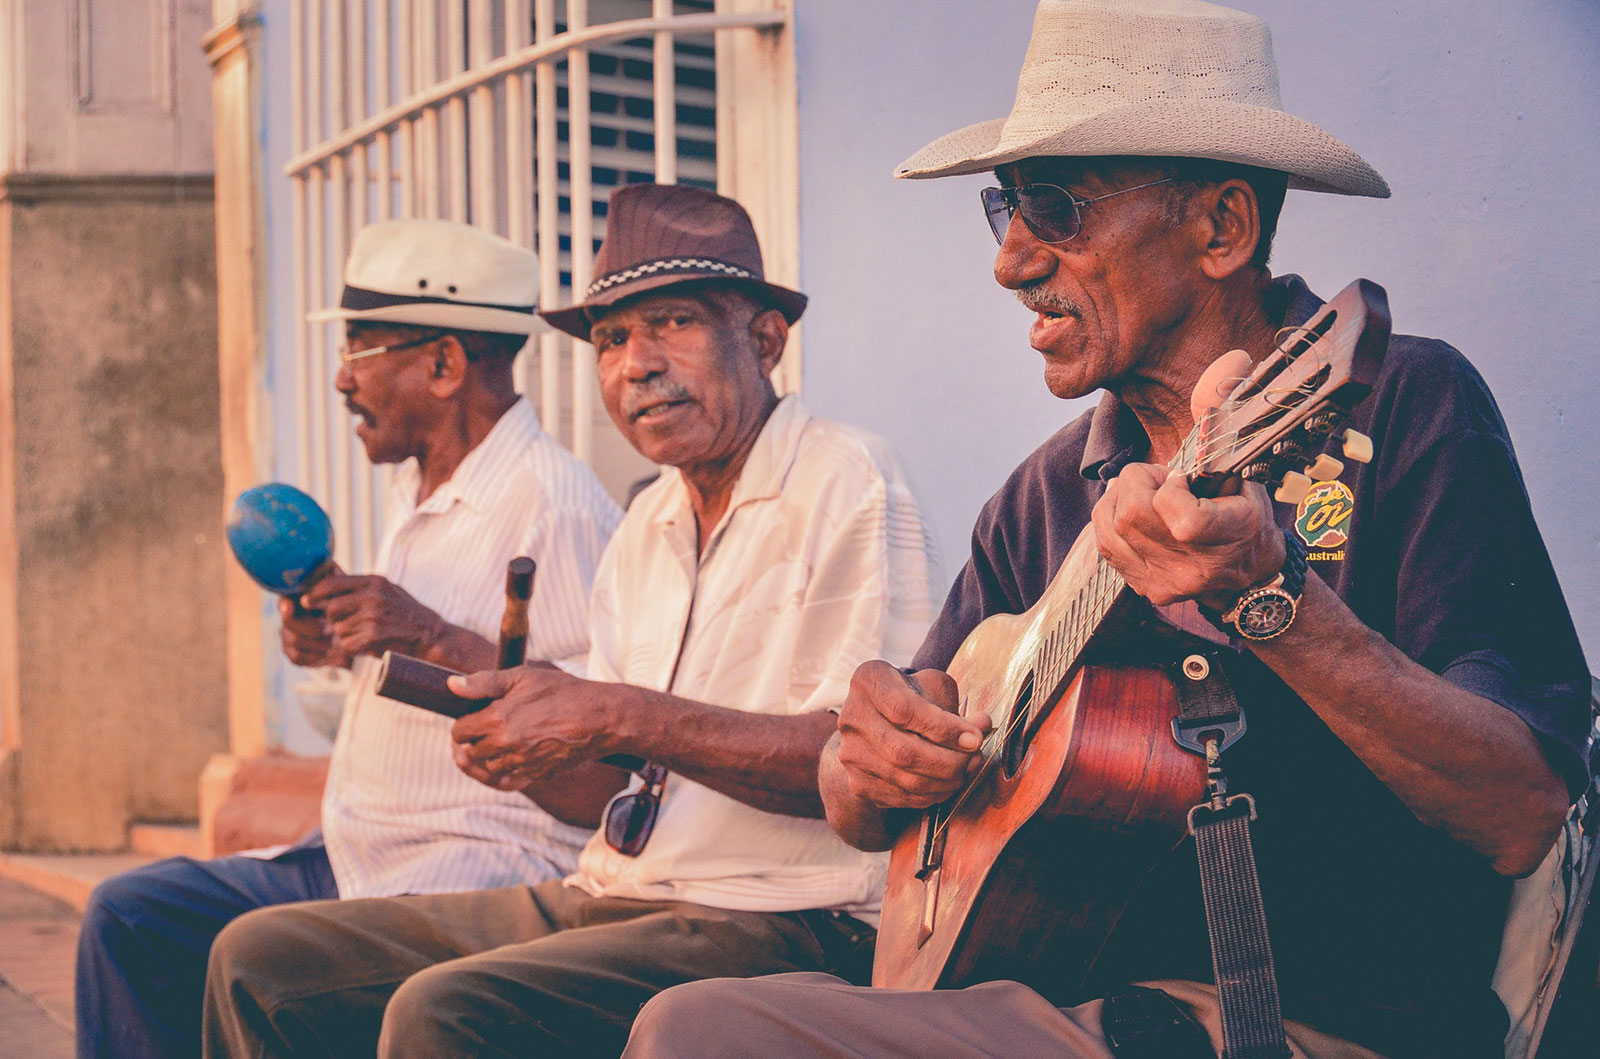 three older adults playing guitars